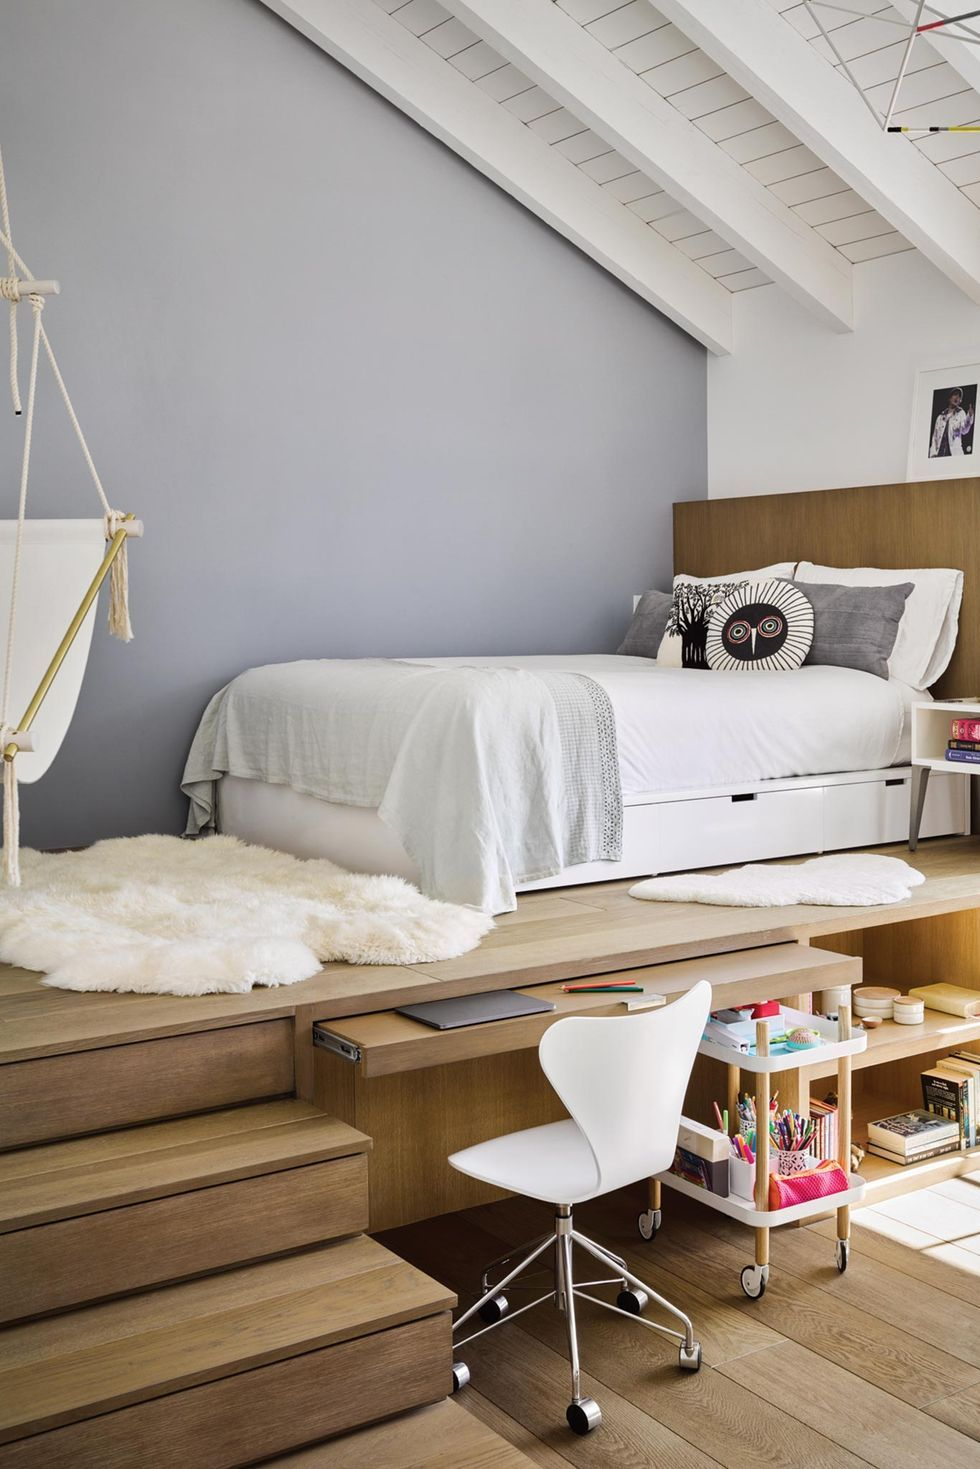 3 Stylish Loft Bedroom Ideas - Clever Design Tips for Studios